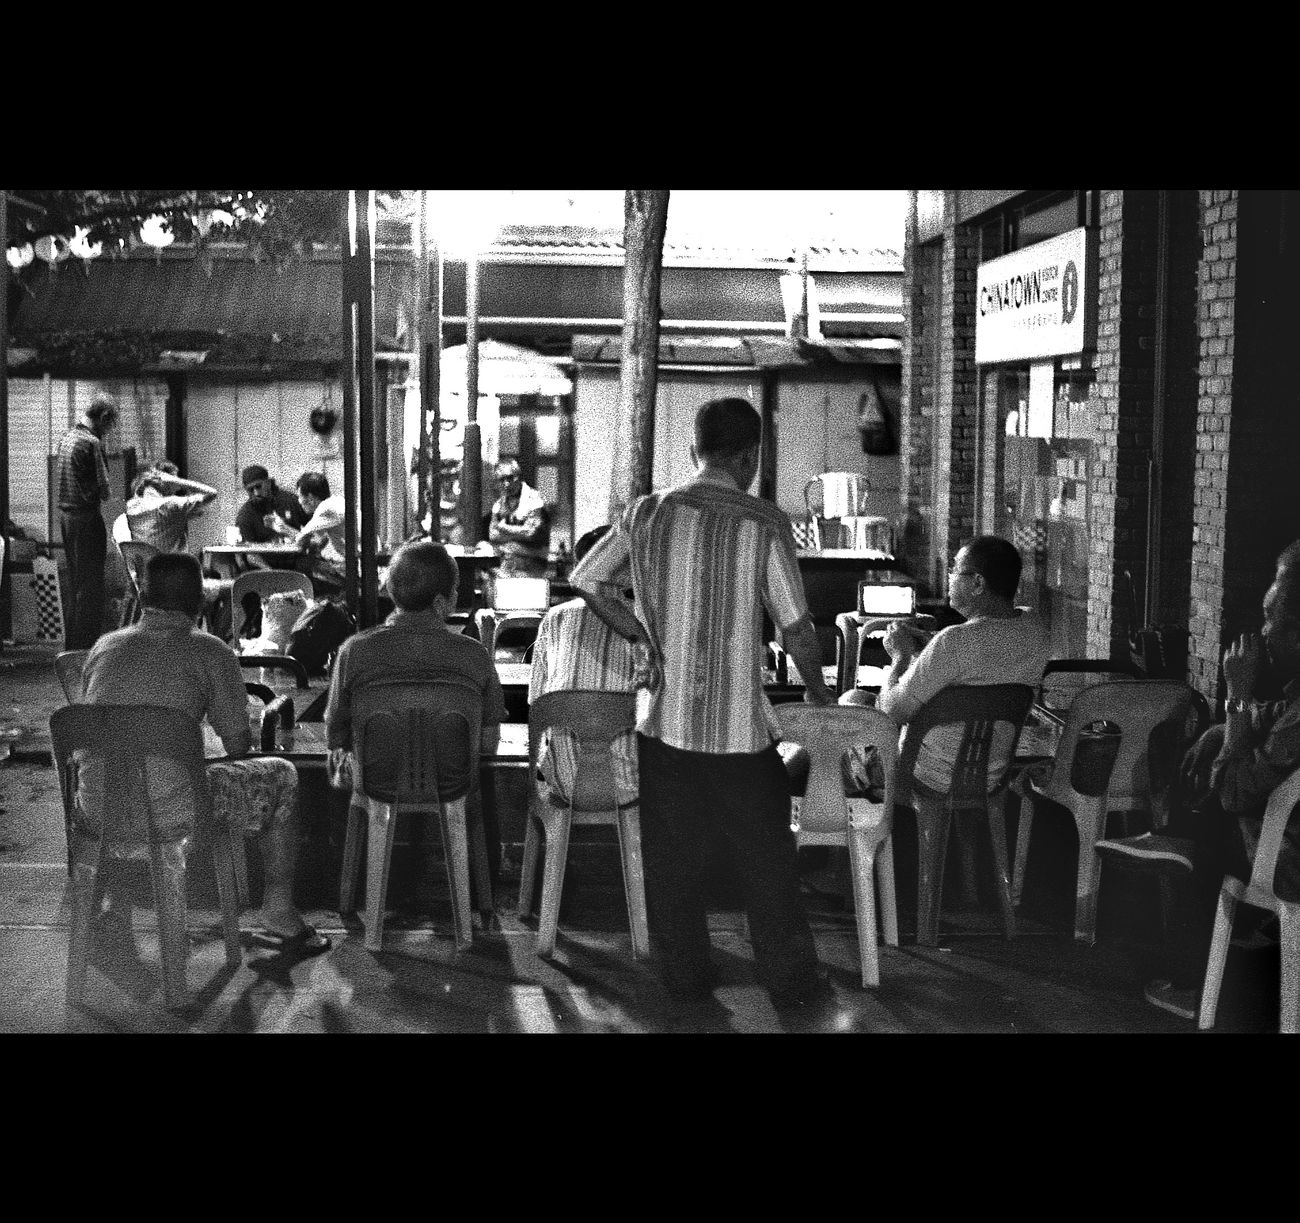 Real People Men Sitting Lifestyles Filmisalive Illuminated Filmcamera Emilrauschenberg Filmisnotdead Streetphotography EyeEmNewHere Filmphotography Filmcommunity Magnumphotos Film Photography Arts Culture And Entertainment Leica Lens Leica Black And White